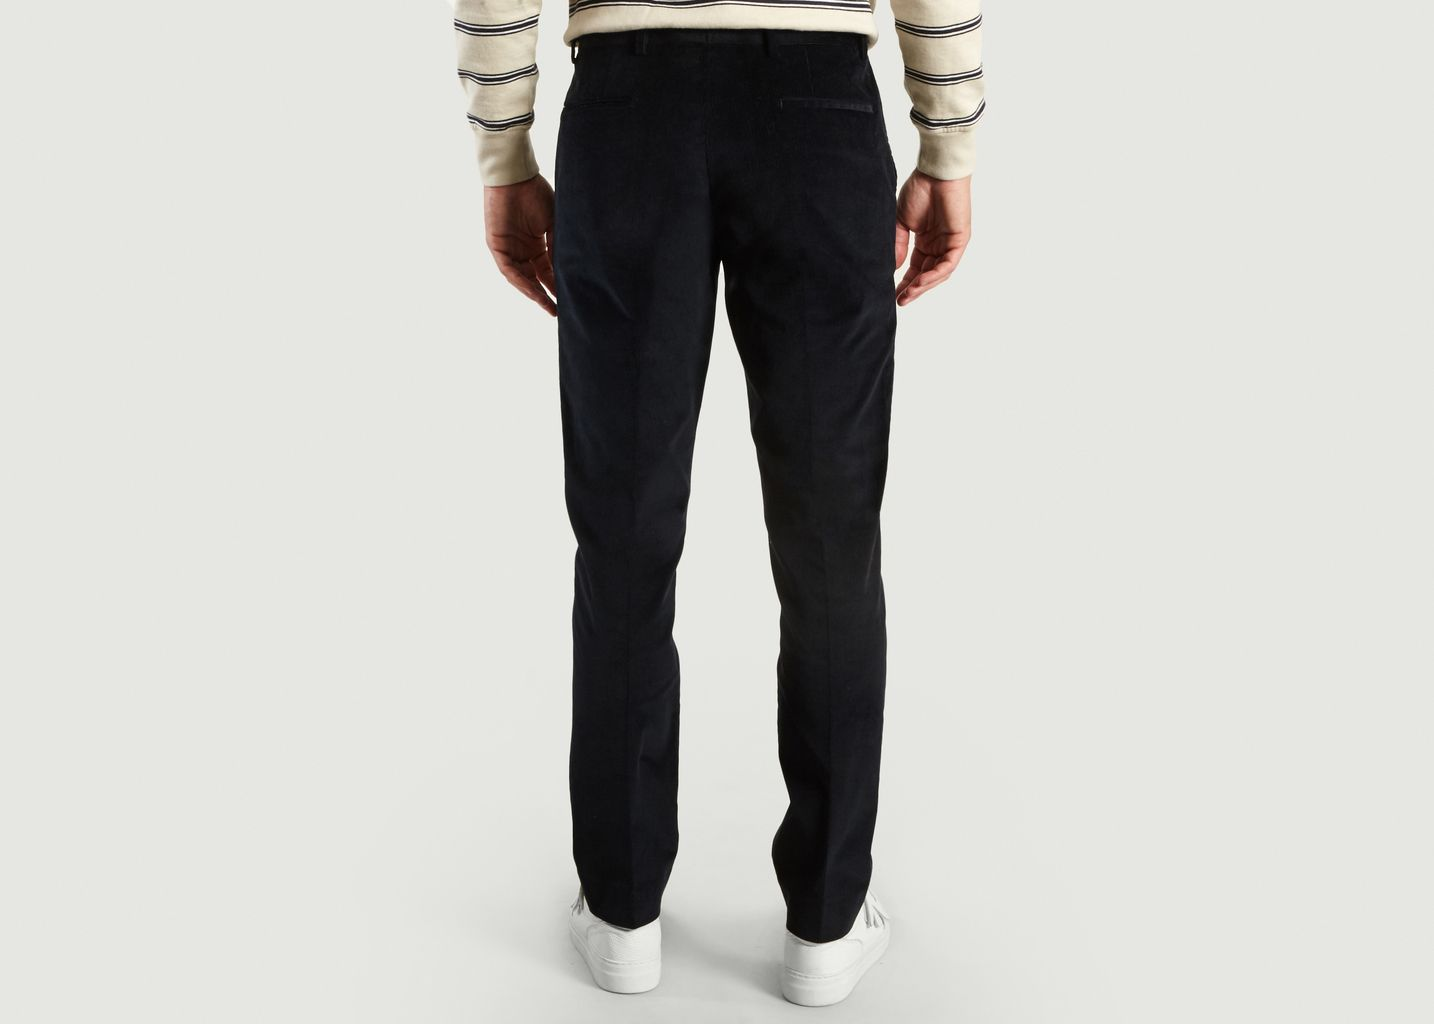 Pantalon en Velours - PS by PAUL SMITH